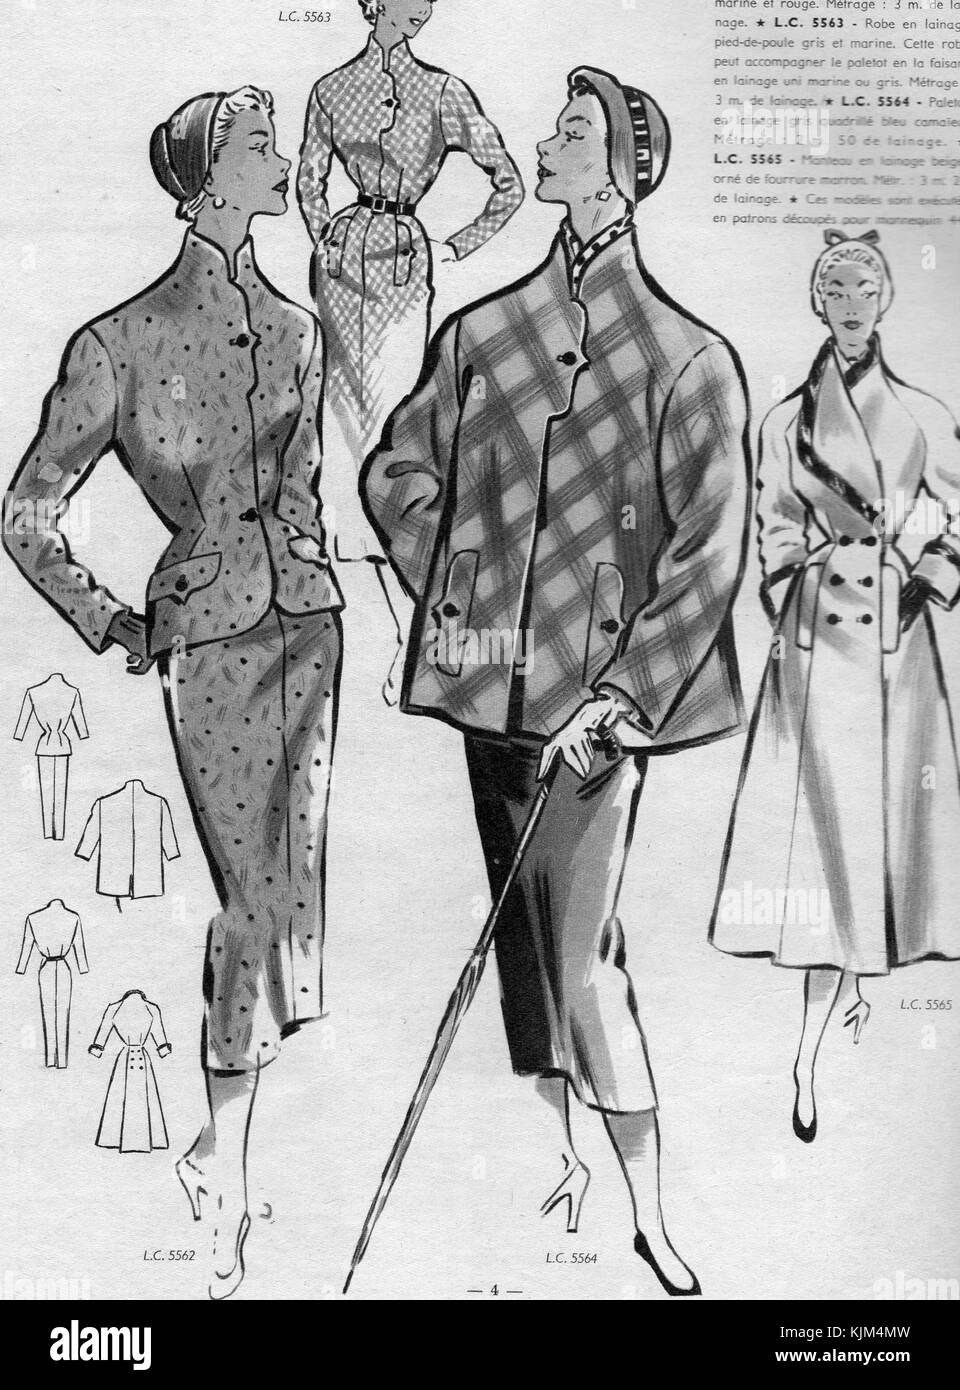 1950`s French Fashion Print - Stock Image